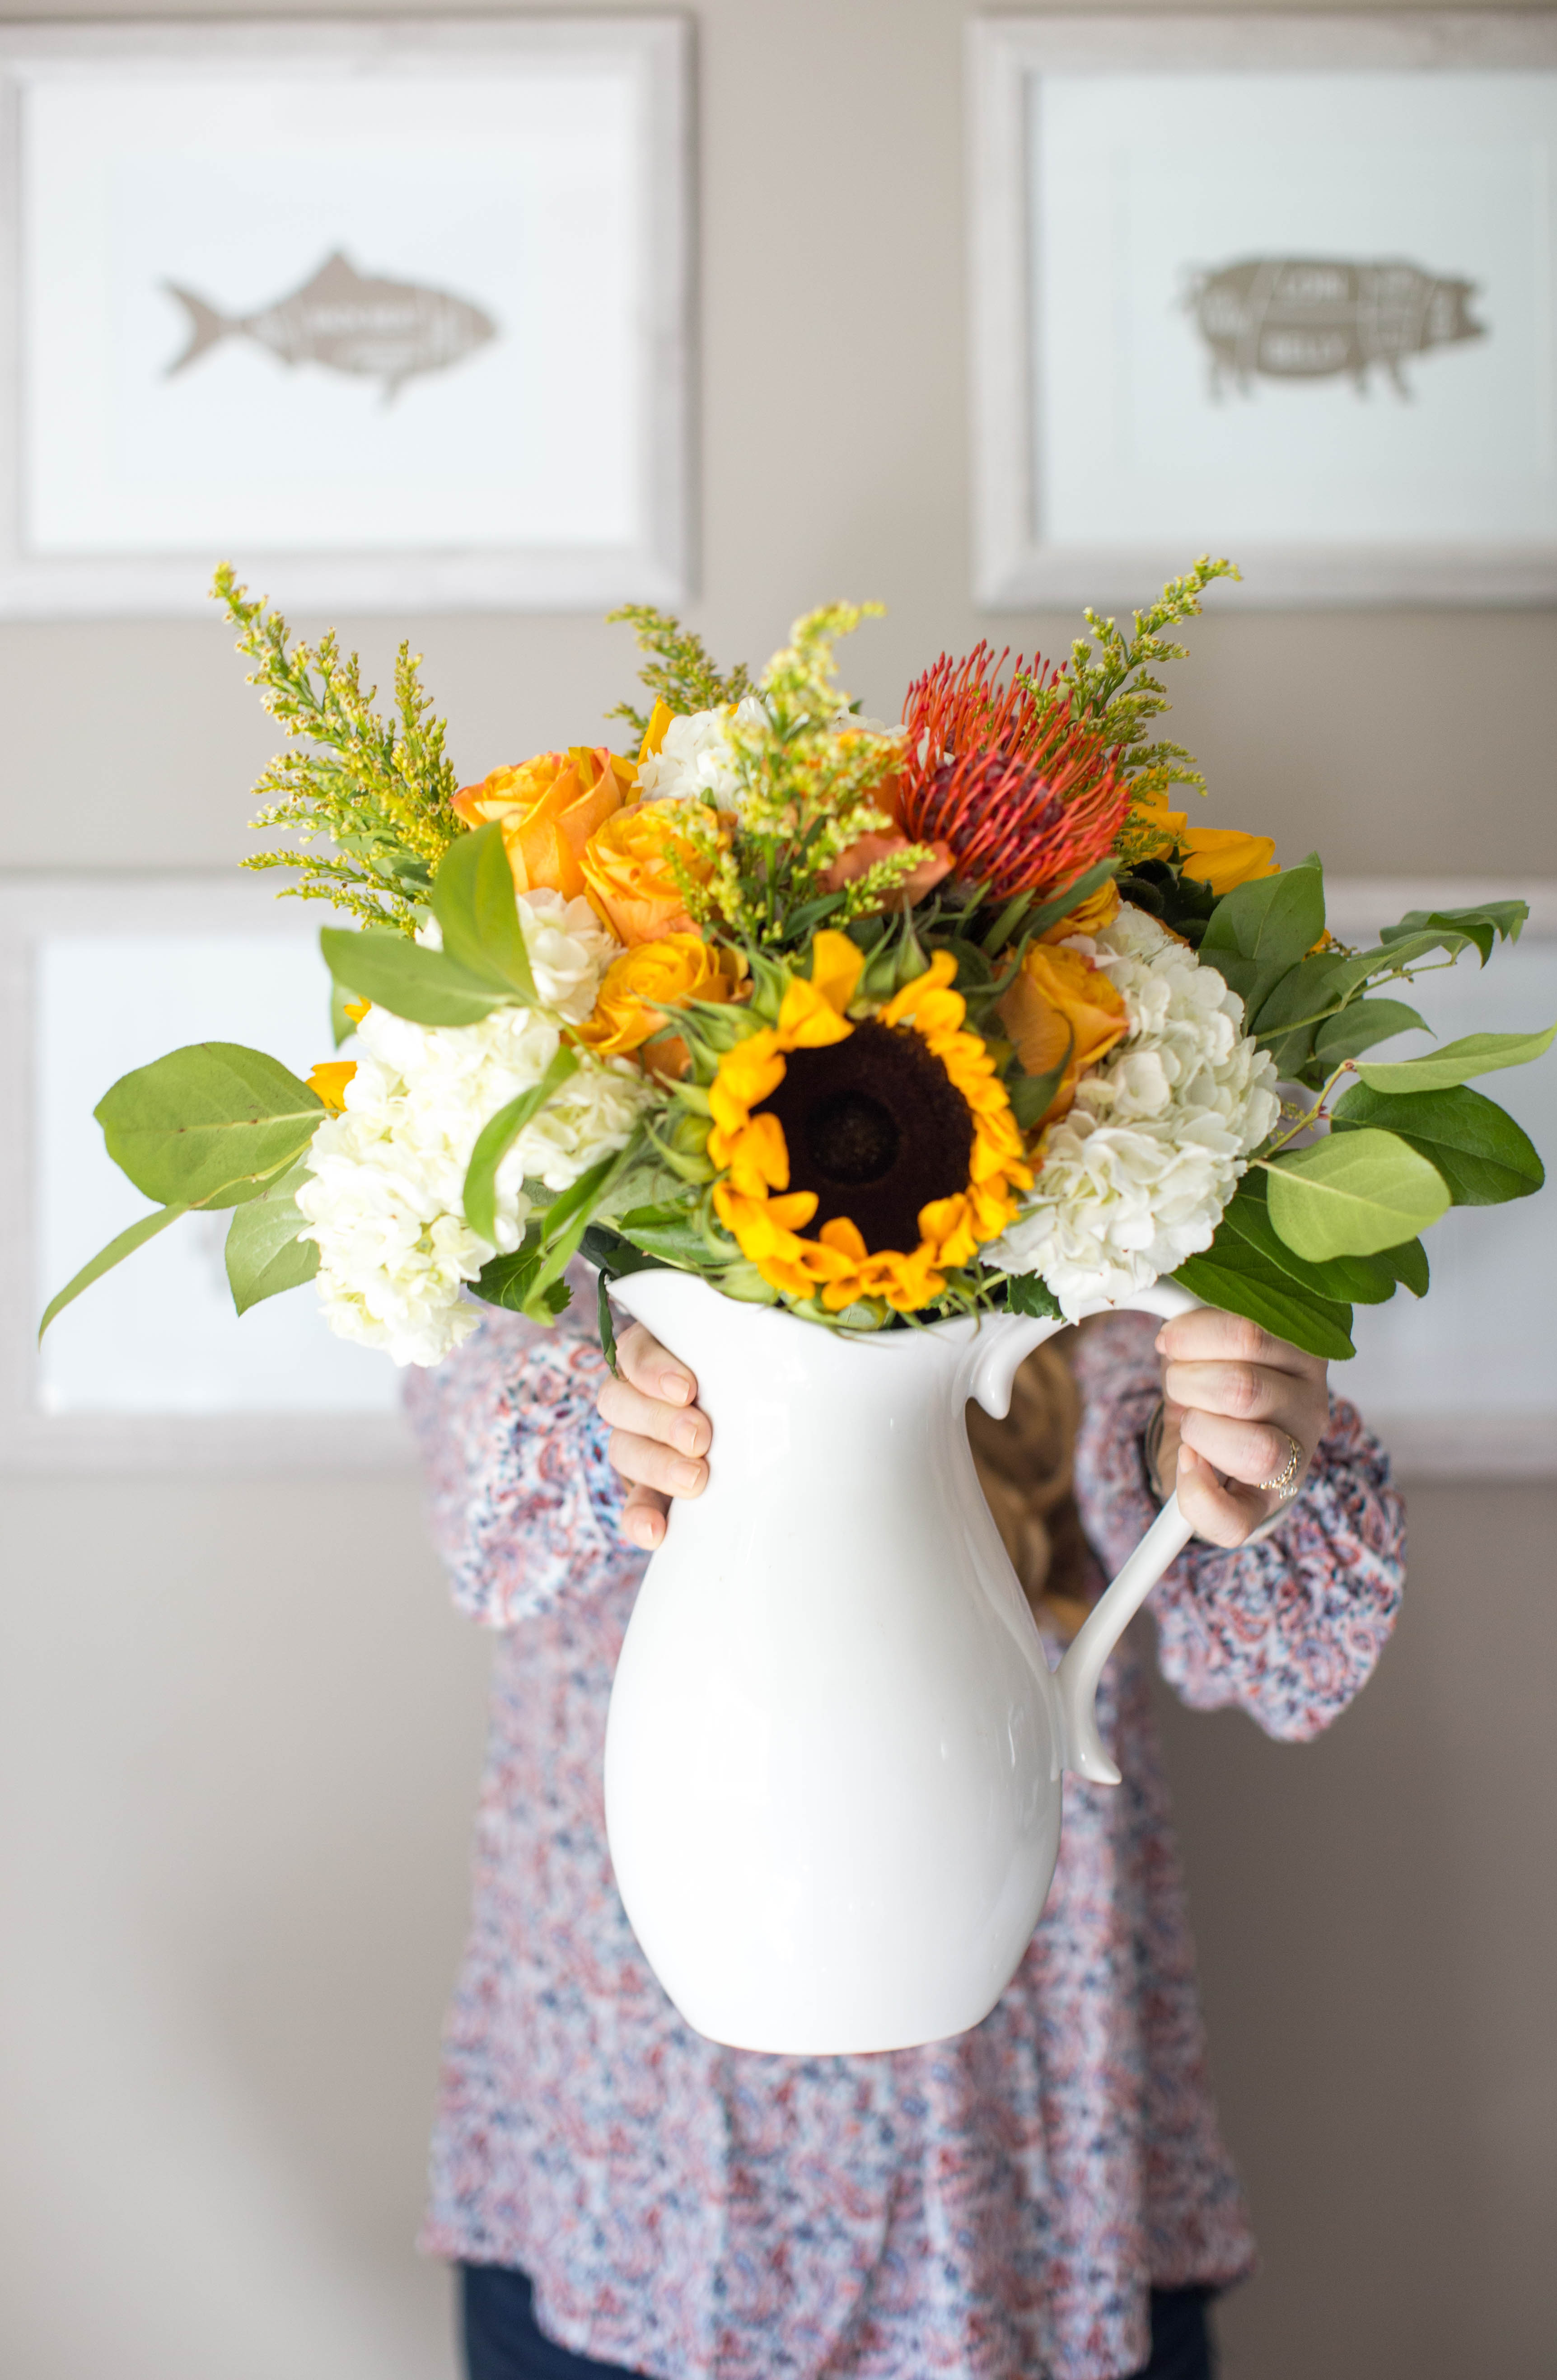 How to Make a Fall Floral Arrangement by North Carolina style blogger Coffee Beans & Bobby Pins